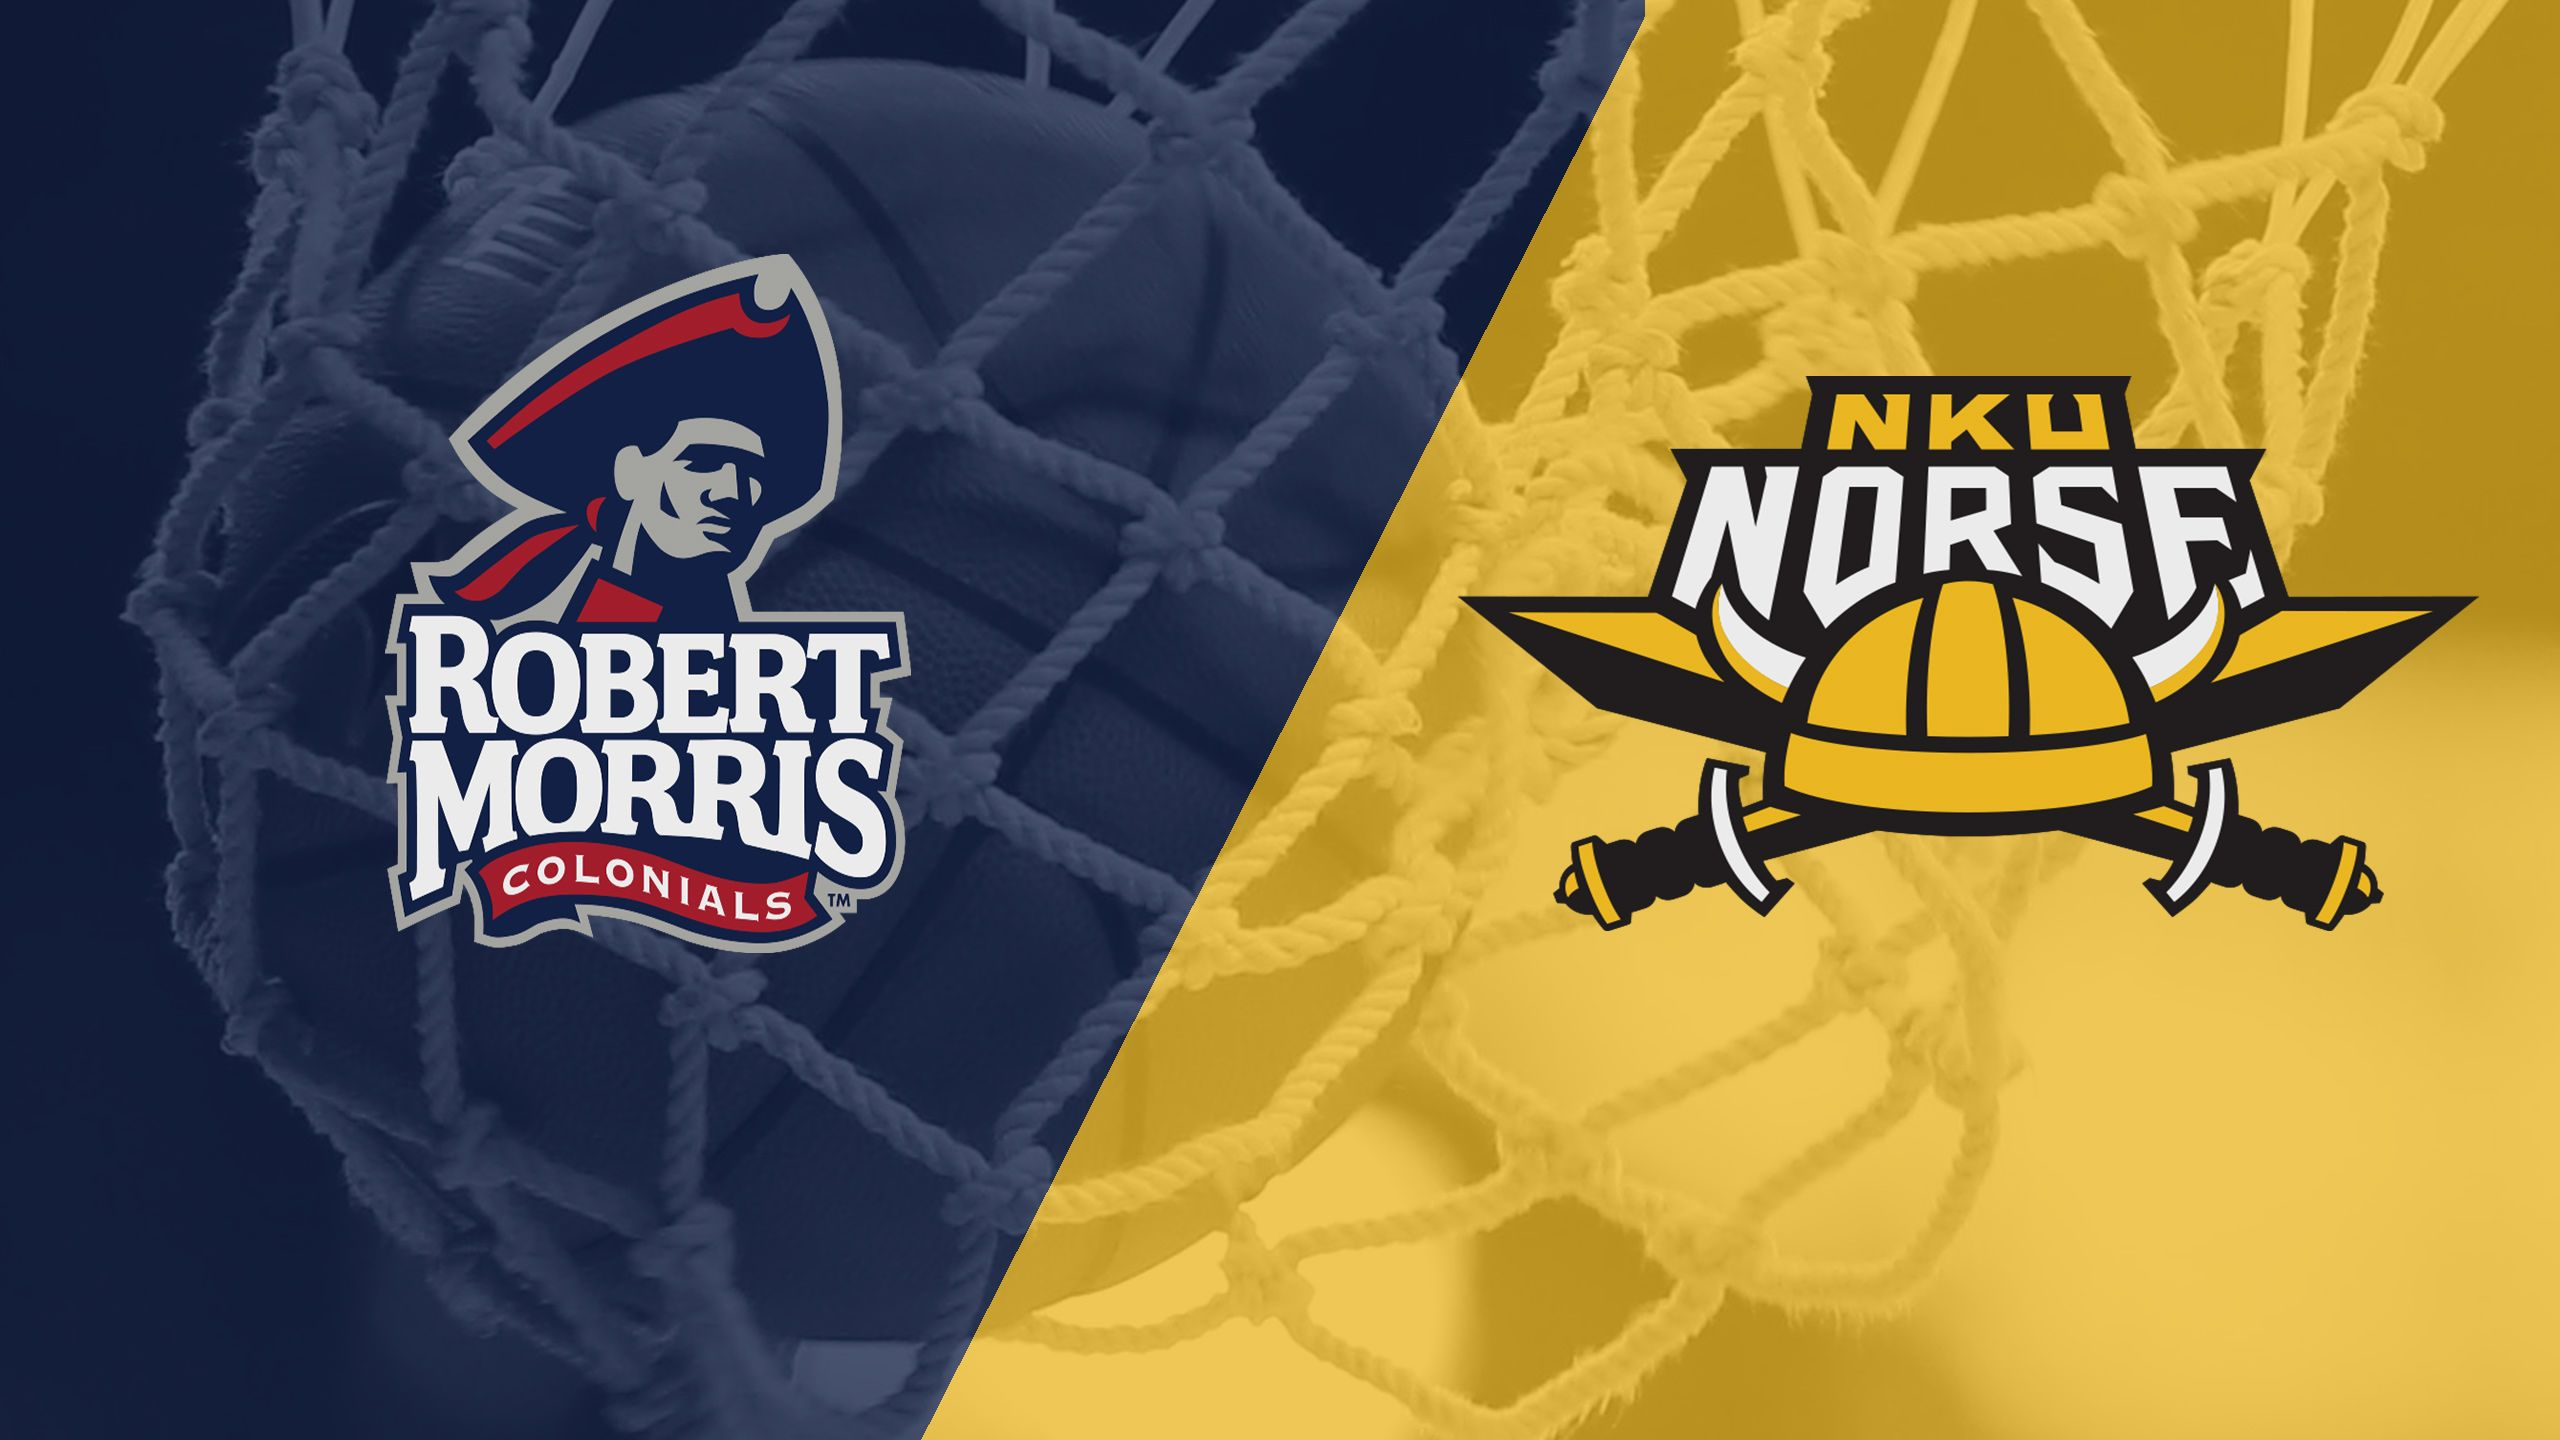 Robert Morris vs. Northern Kentucky (W Basketball)